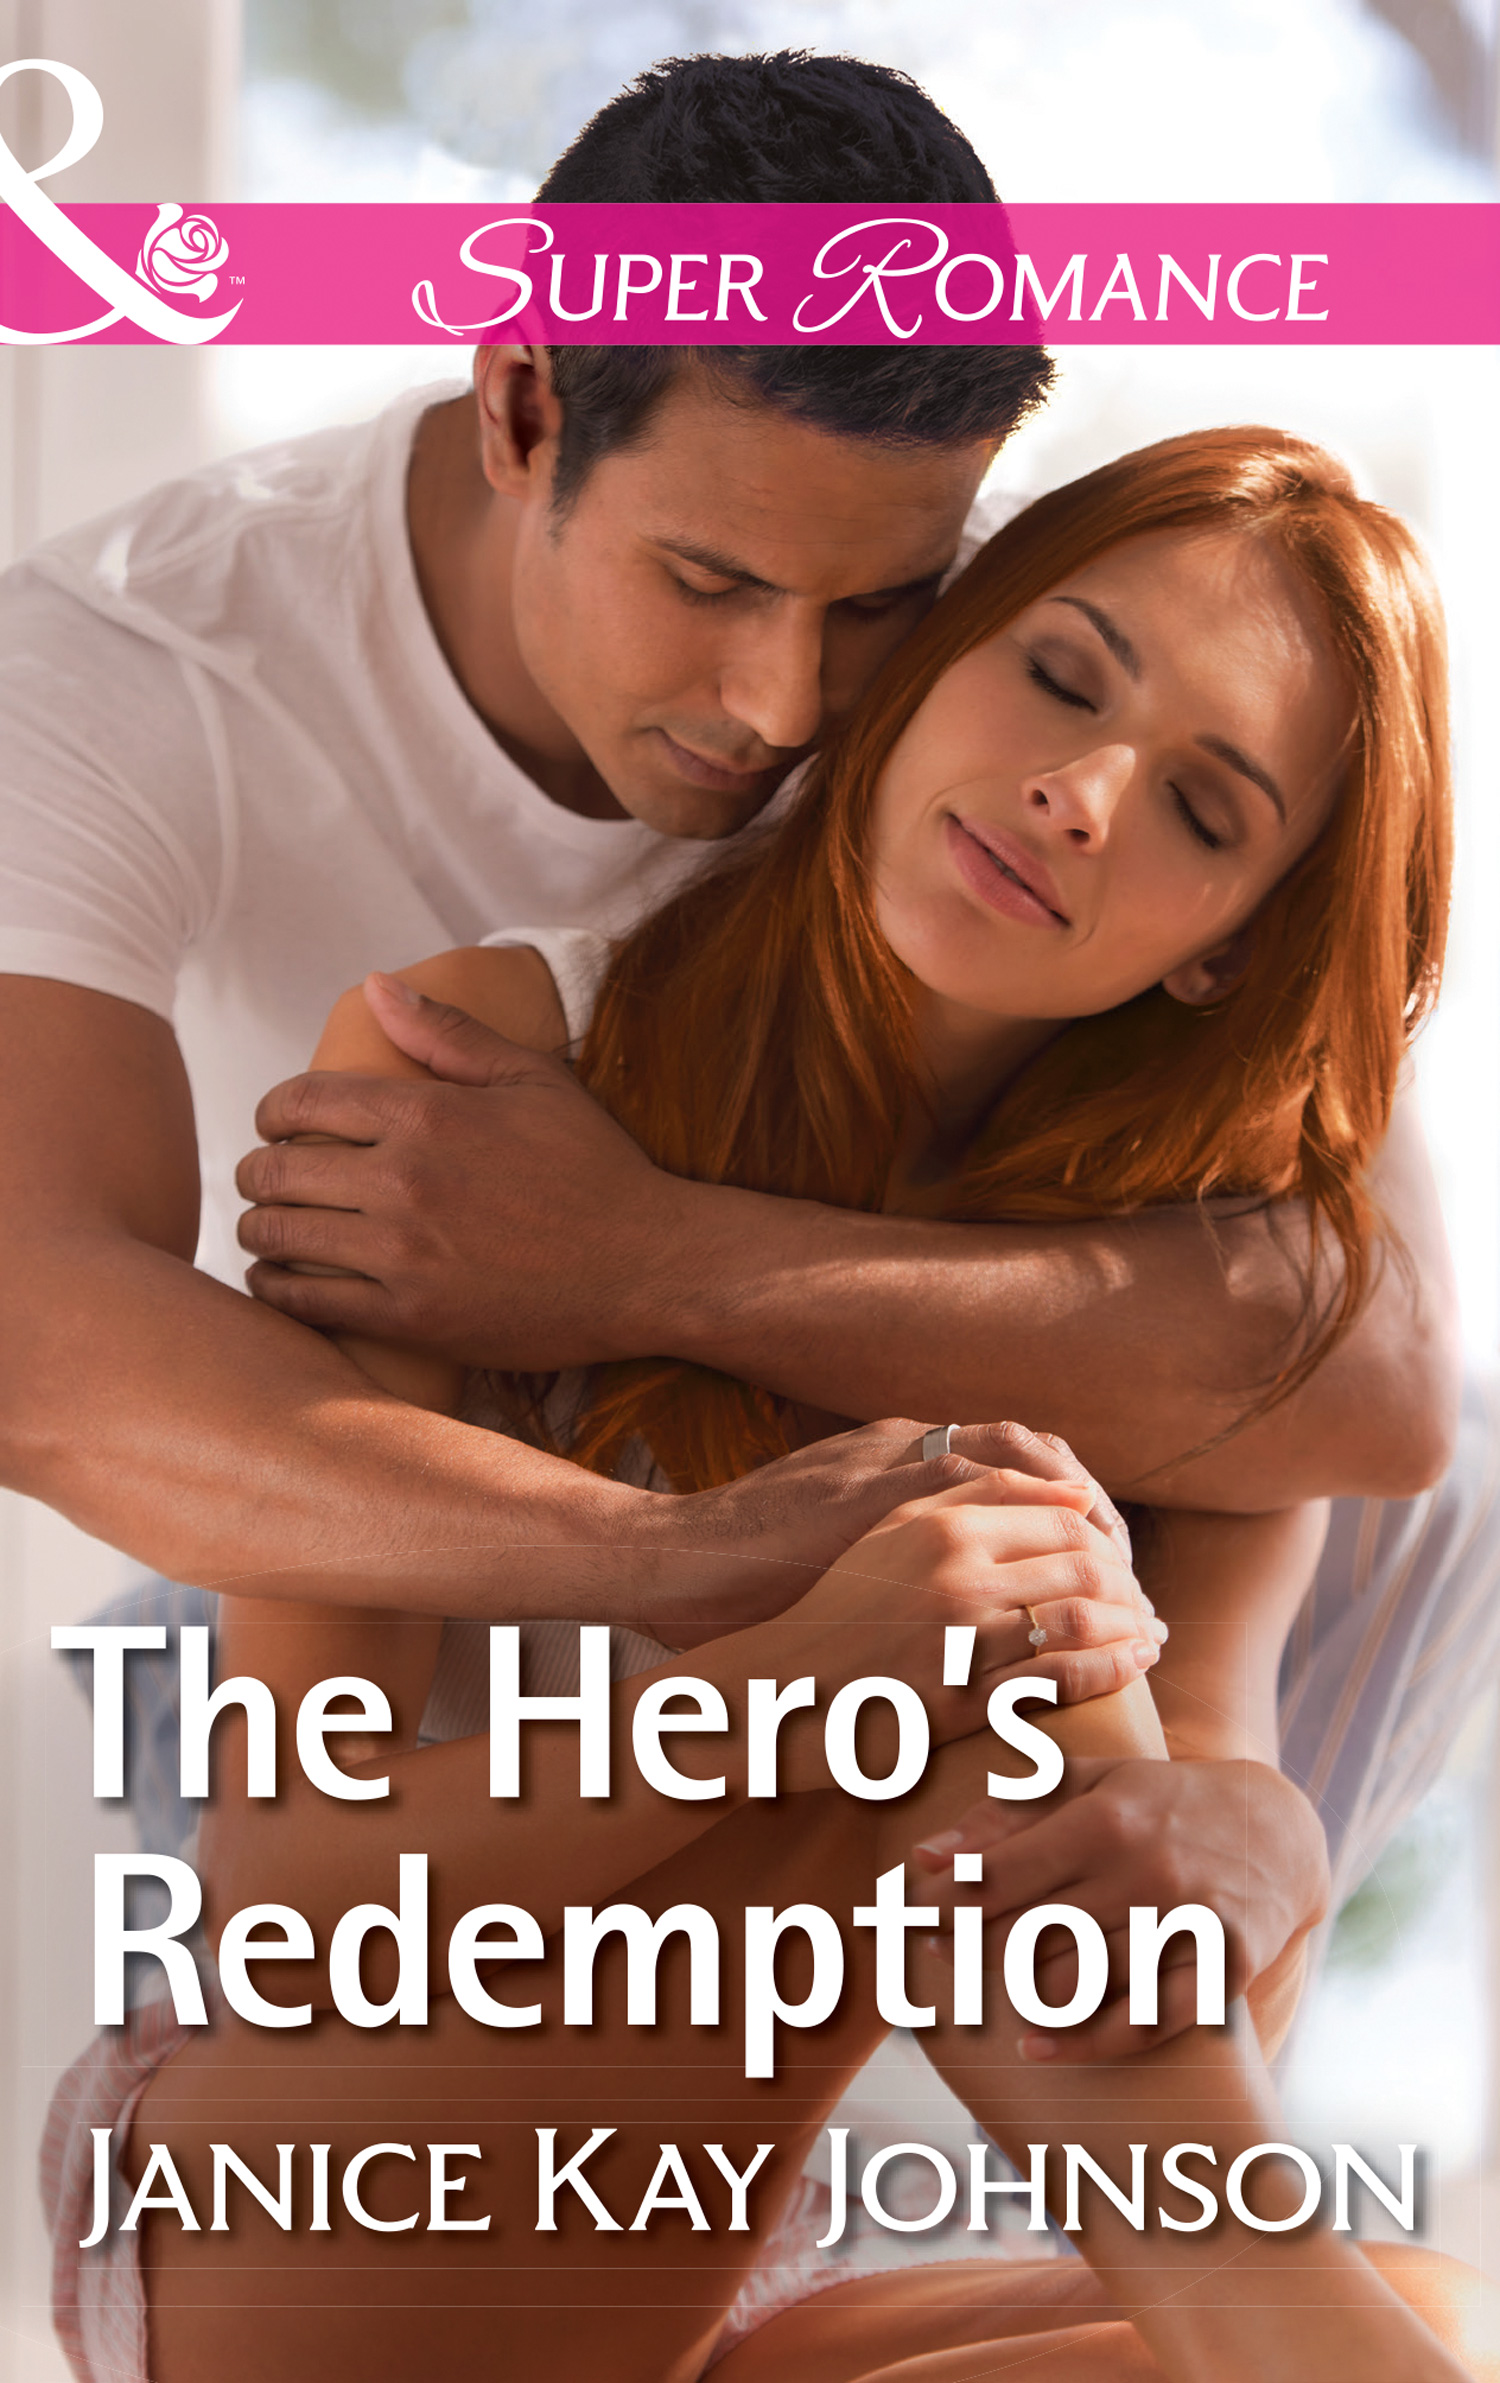 The Hero's Redemption